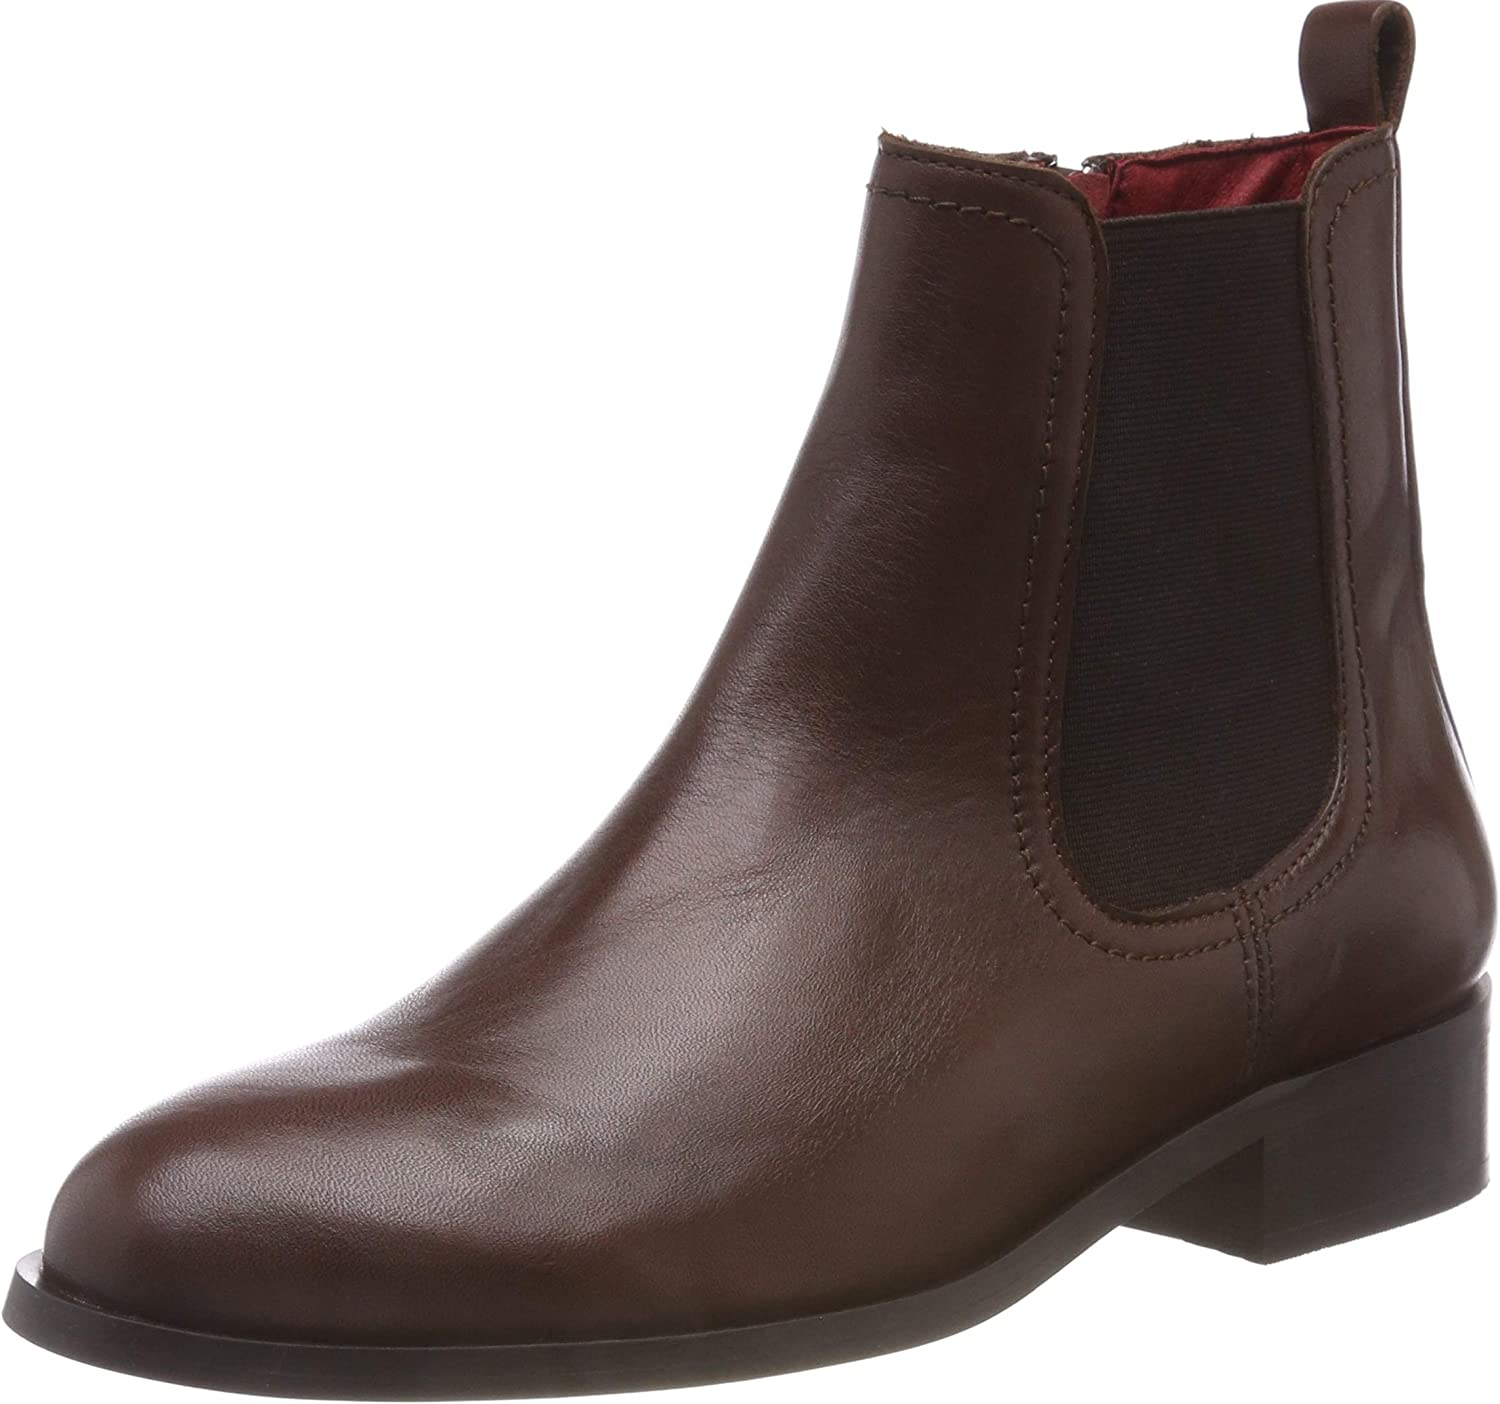 Buffalo Damen Almond Sauvage Leather Chelsea Stiefel